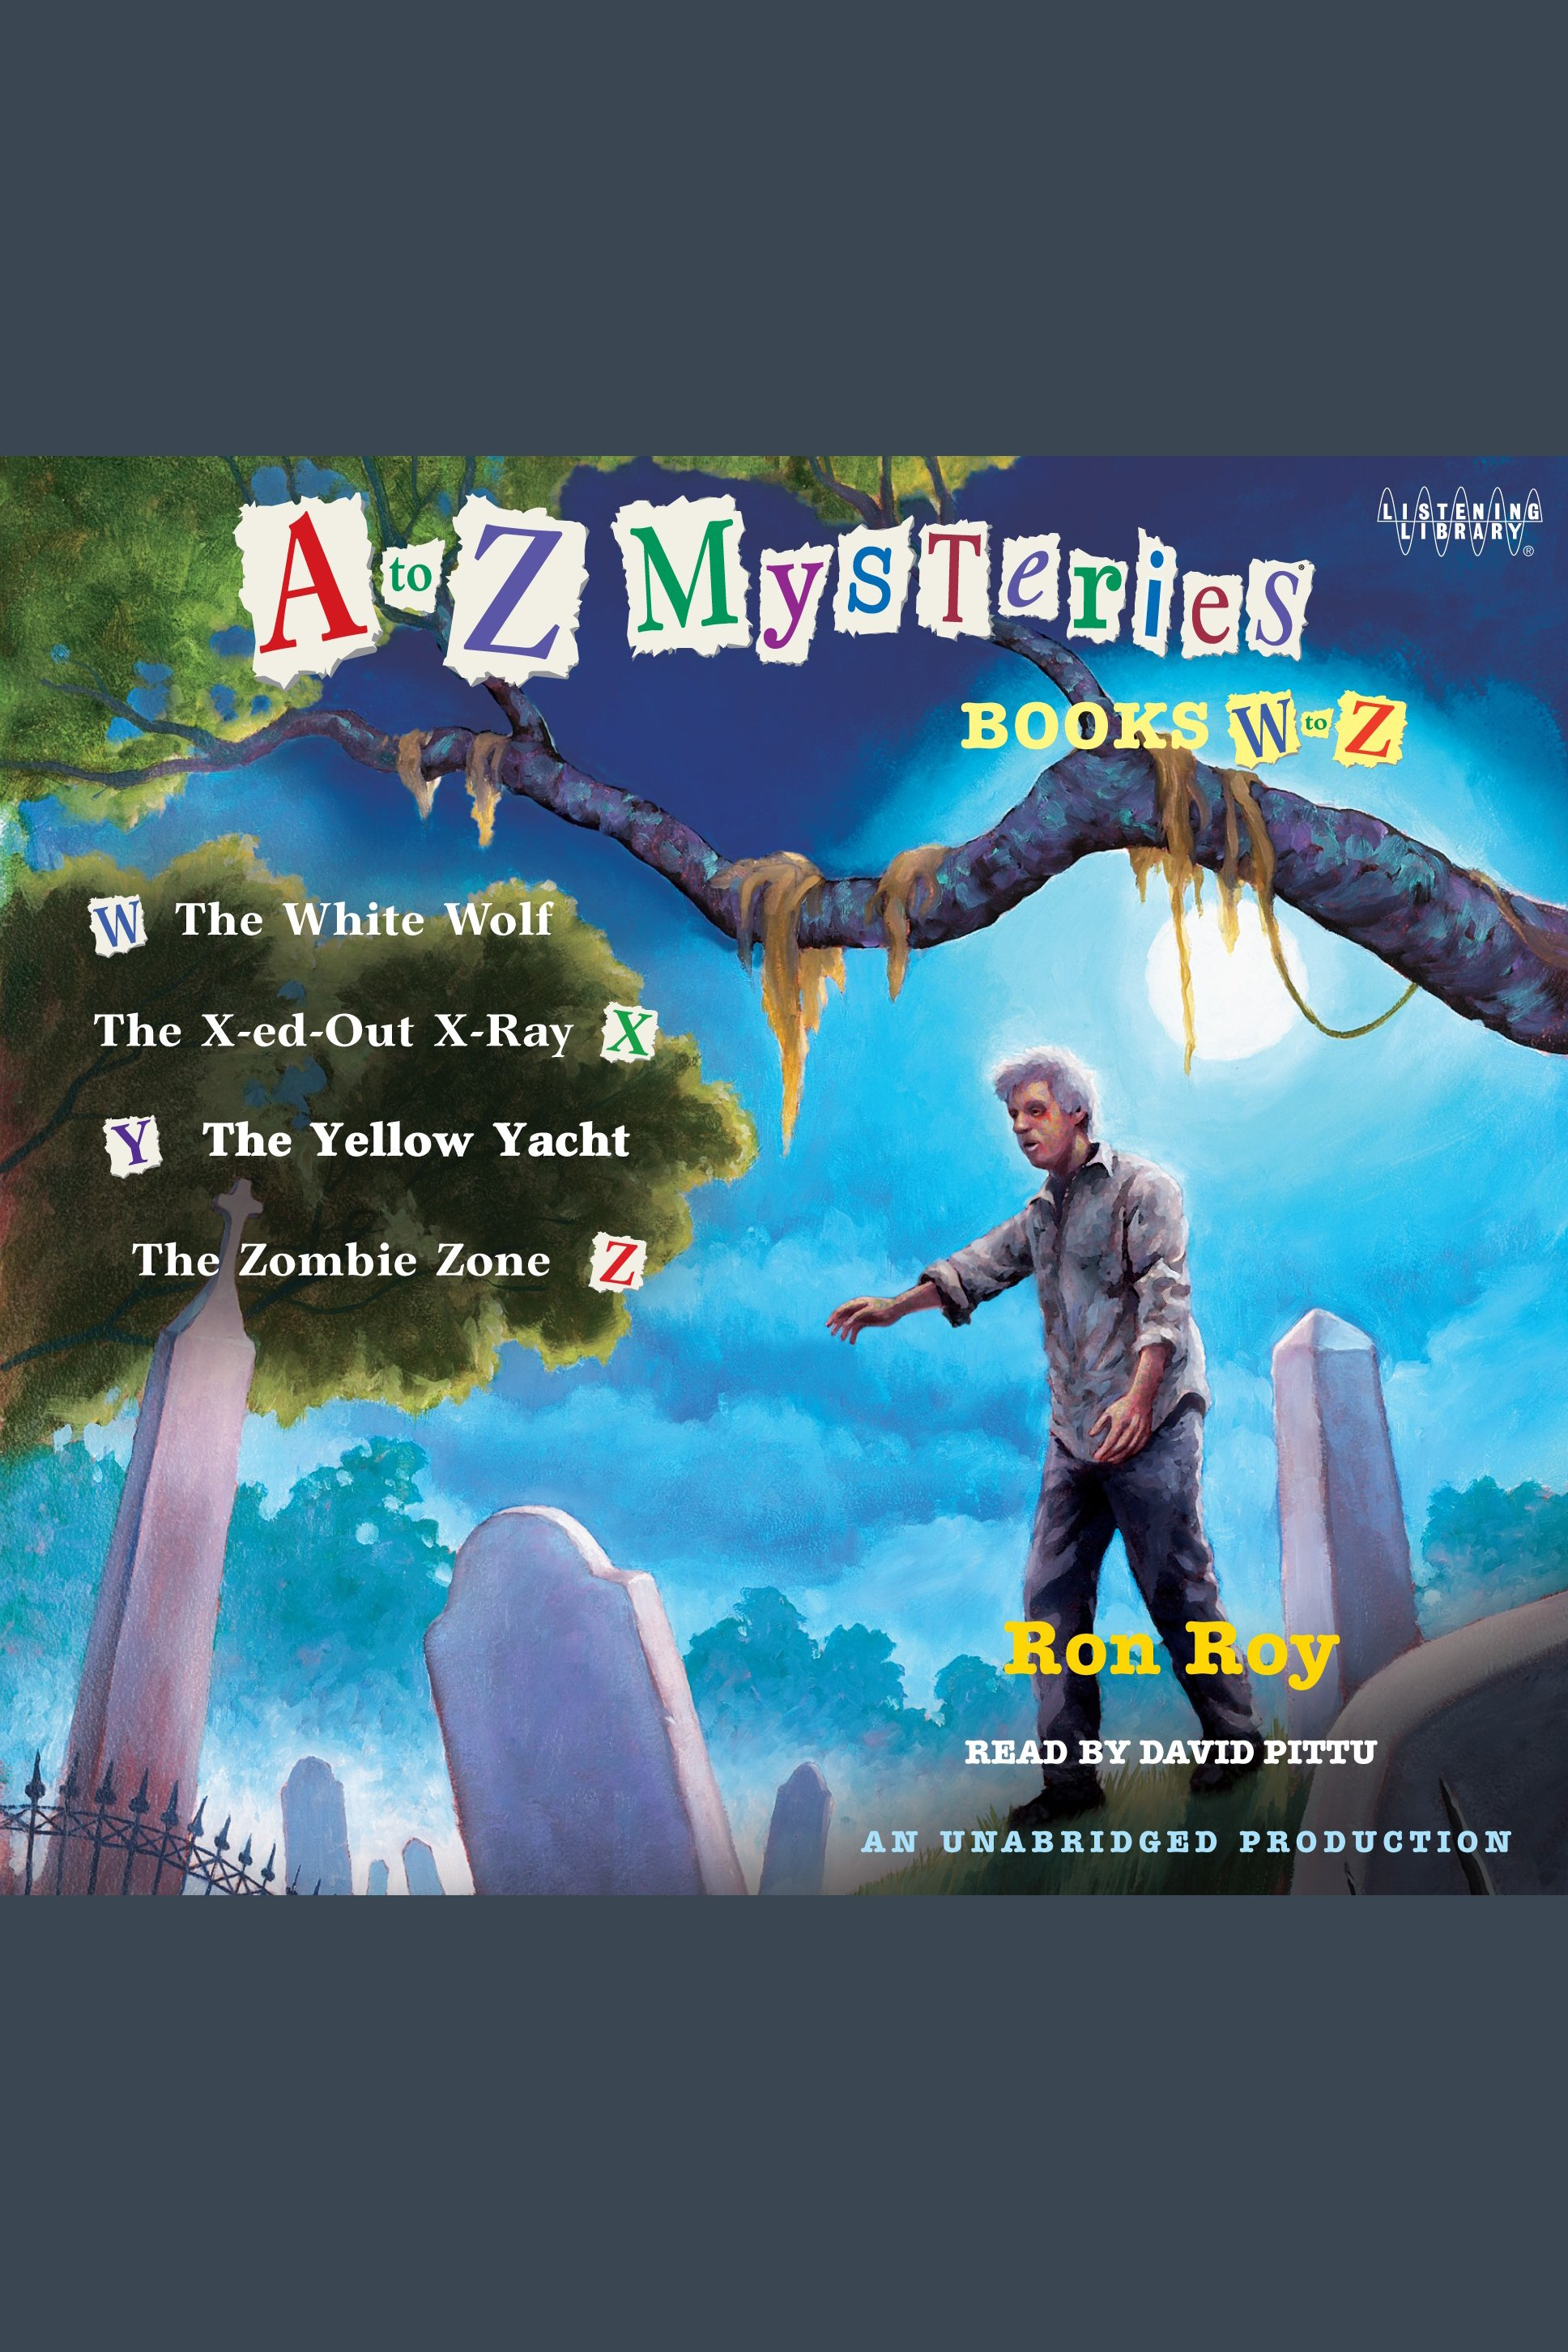 A to Z Mysteries: Books W-Z cover image